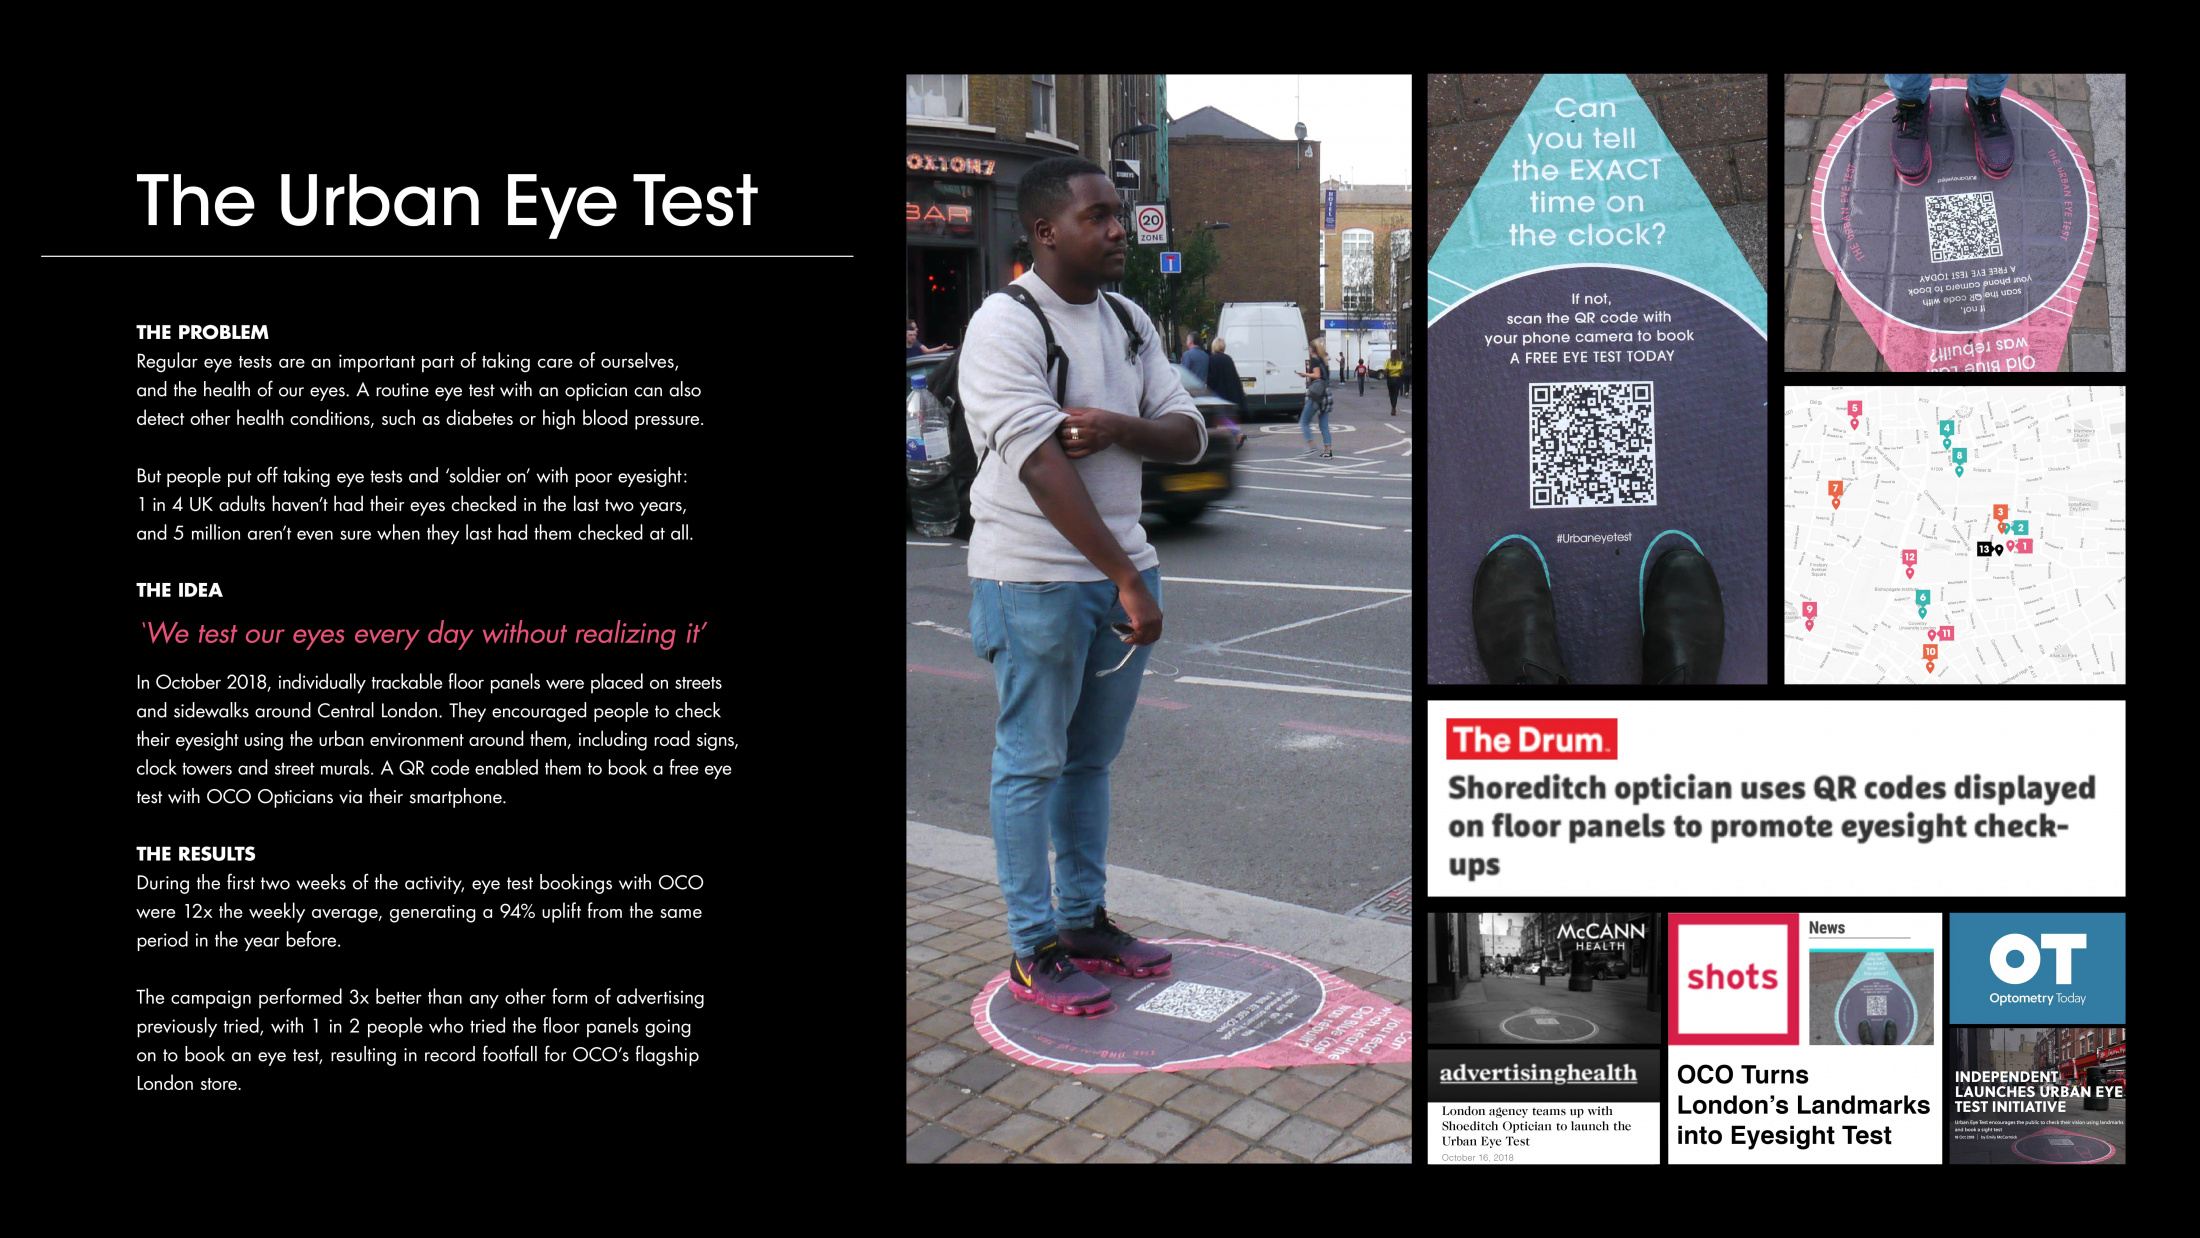 Image Media for The Urban Eye Test